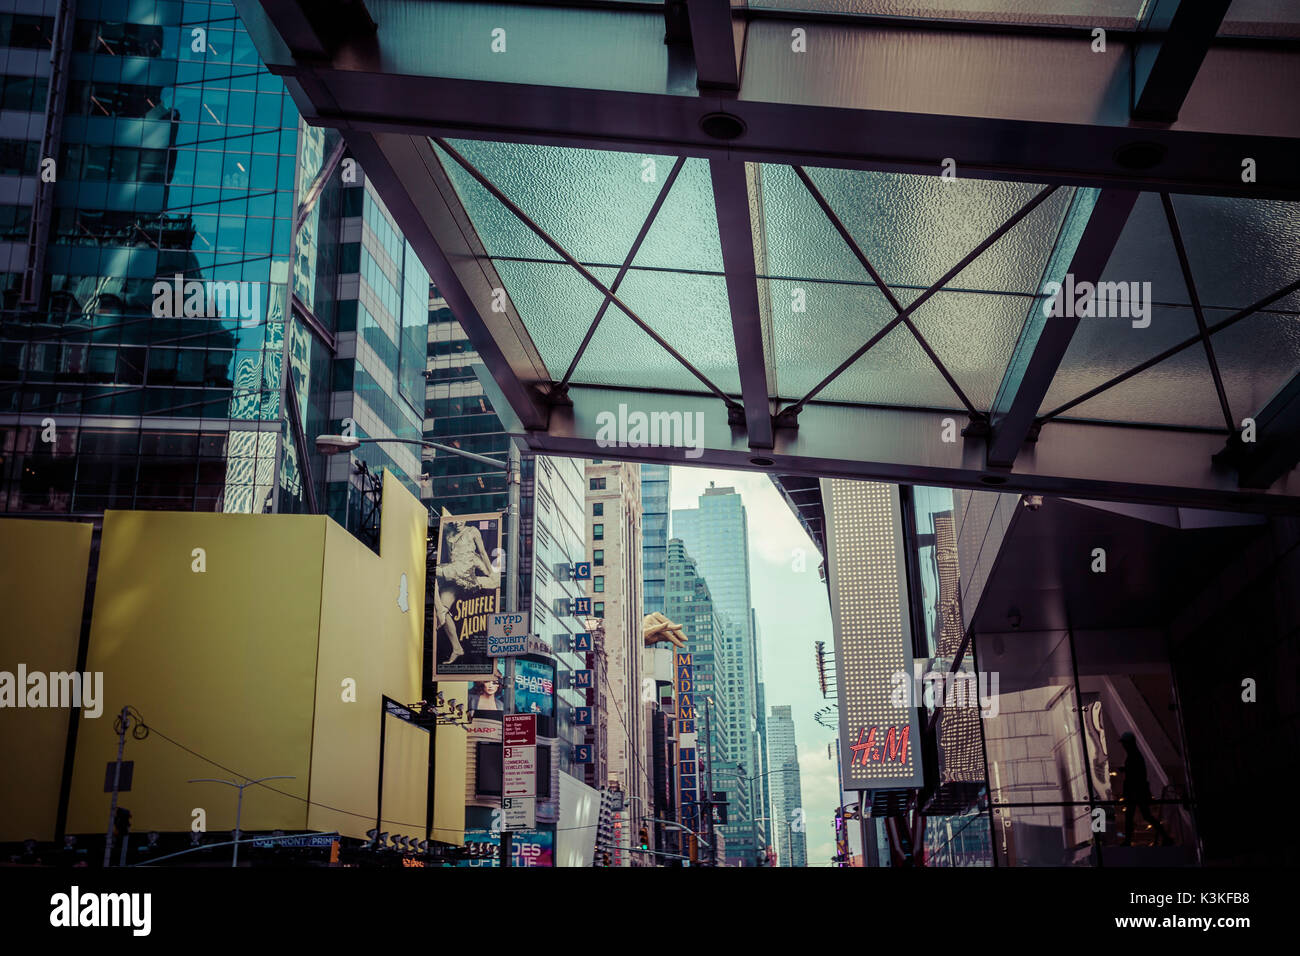 Ads on Time Square, architecture, skyscrapers, Streetview, Manhatten, New York, USA - Stock Image